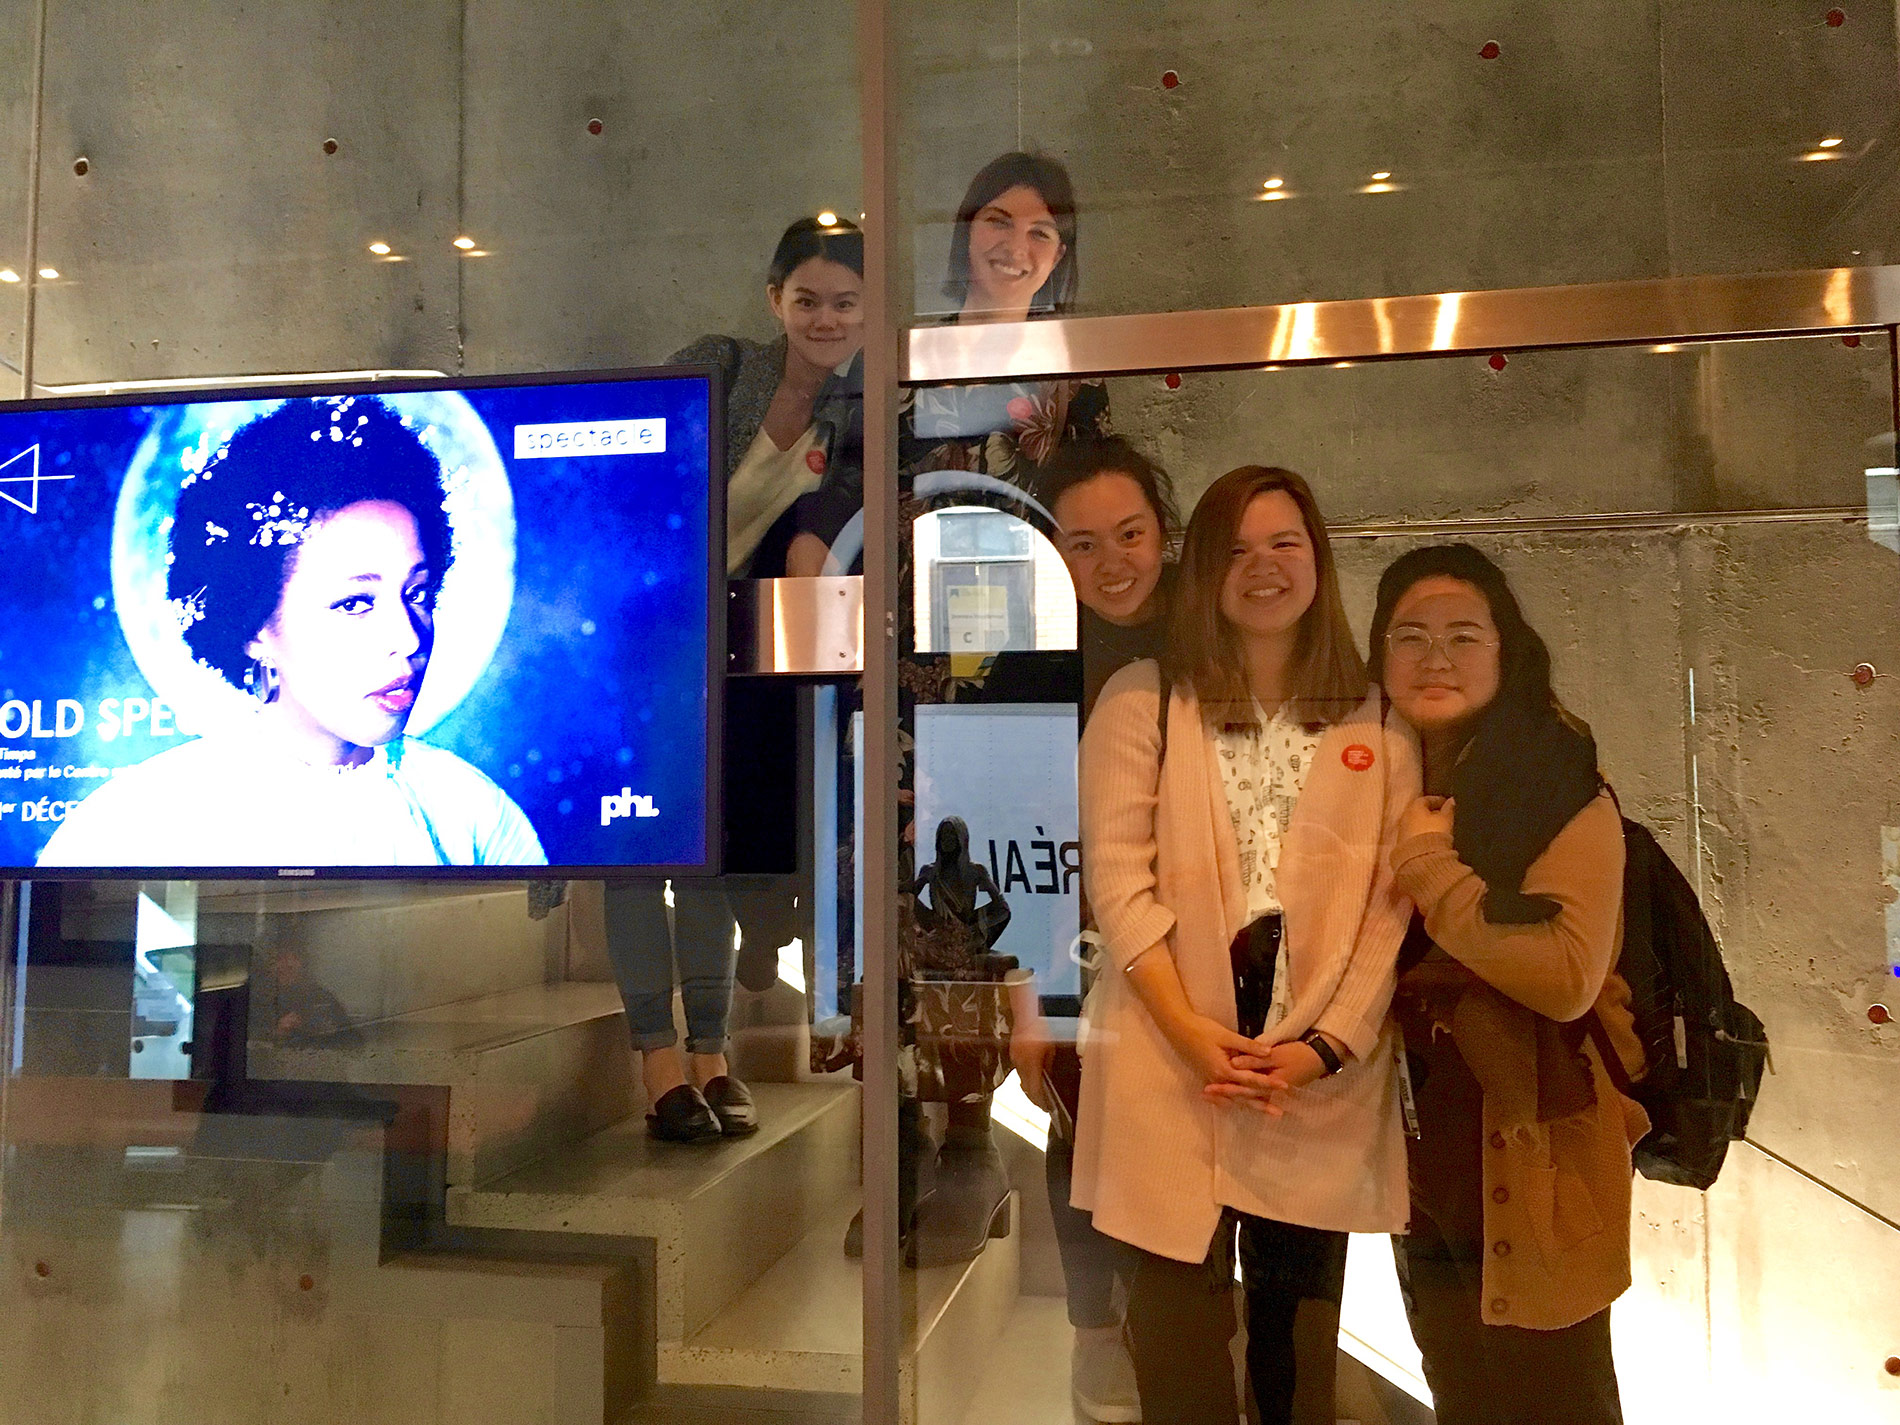 IDEA students  Lillian Zhang ,  Jominca Engelbrecht ,  Jessica Peng ,  Ashley Loo  and  Cynthia Vo  excited to lose themselves in the Lucid Realities exhibit at the  Phi Centre